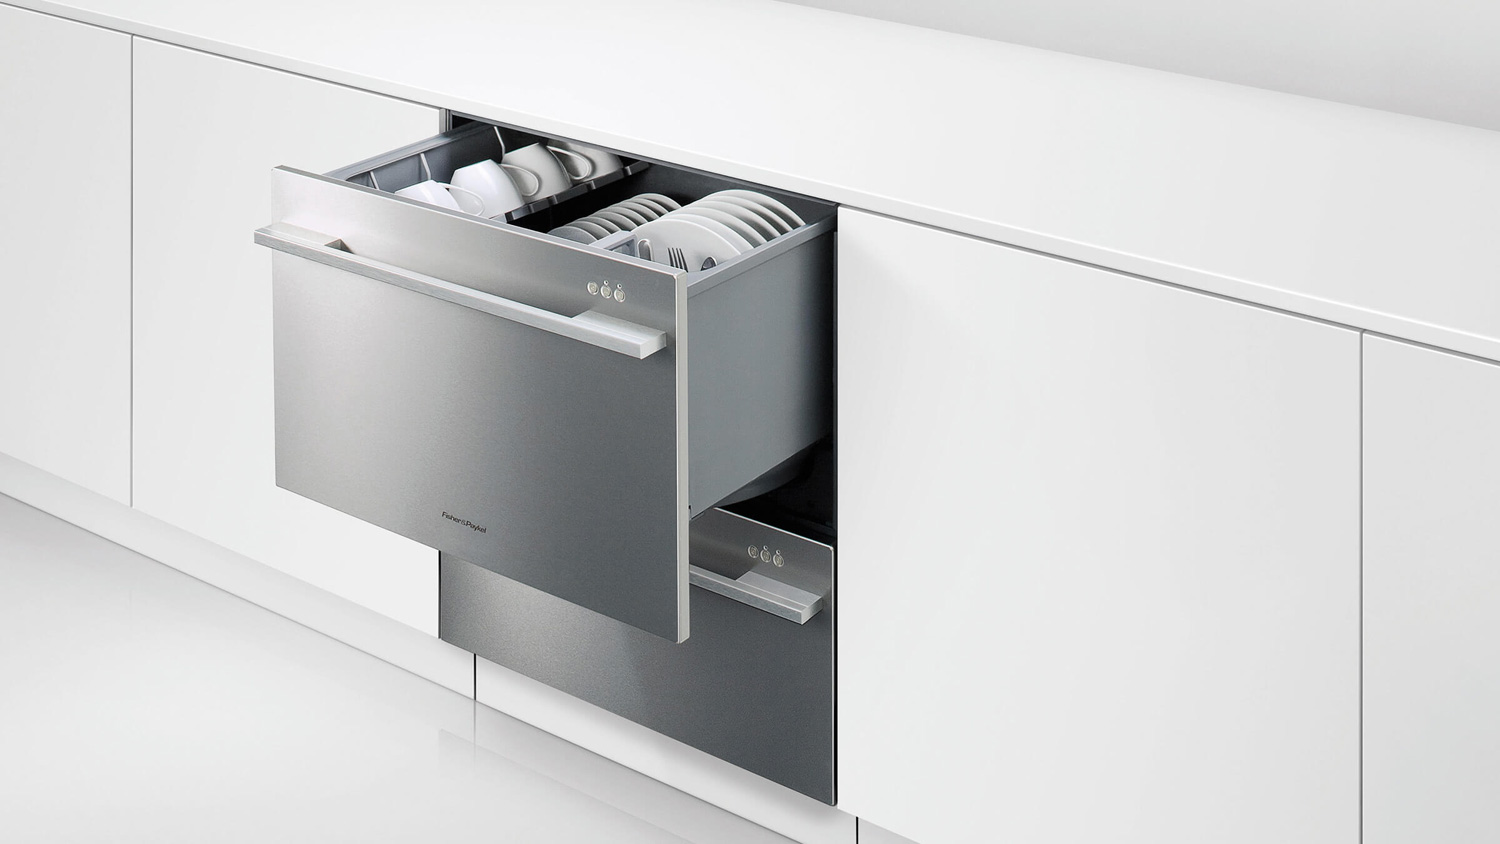 Dishwasher Drawers Vs Standard Paykel Dishdrawers Vs Standard Dishwashers